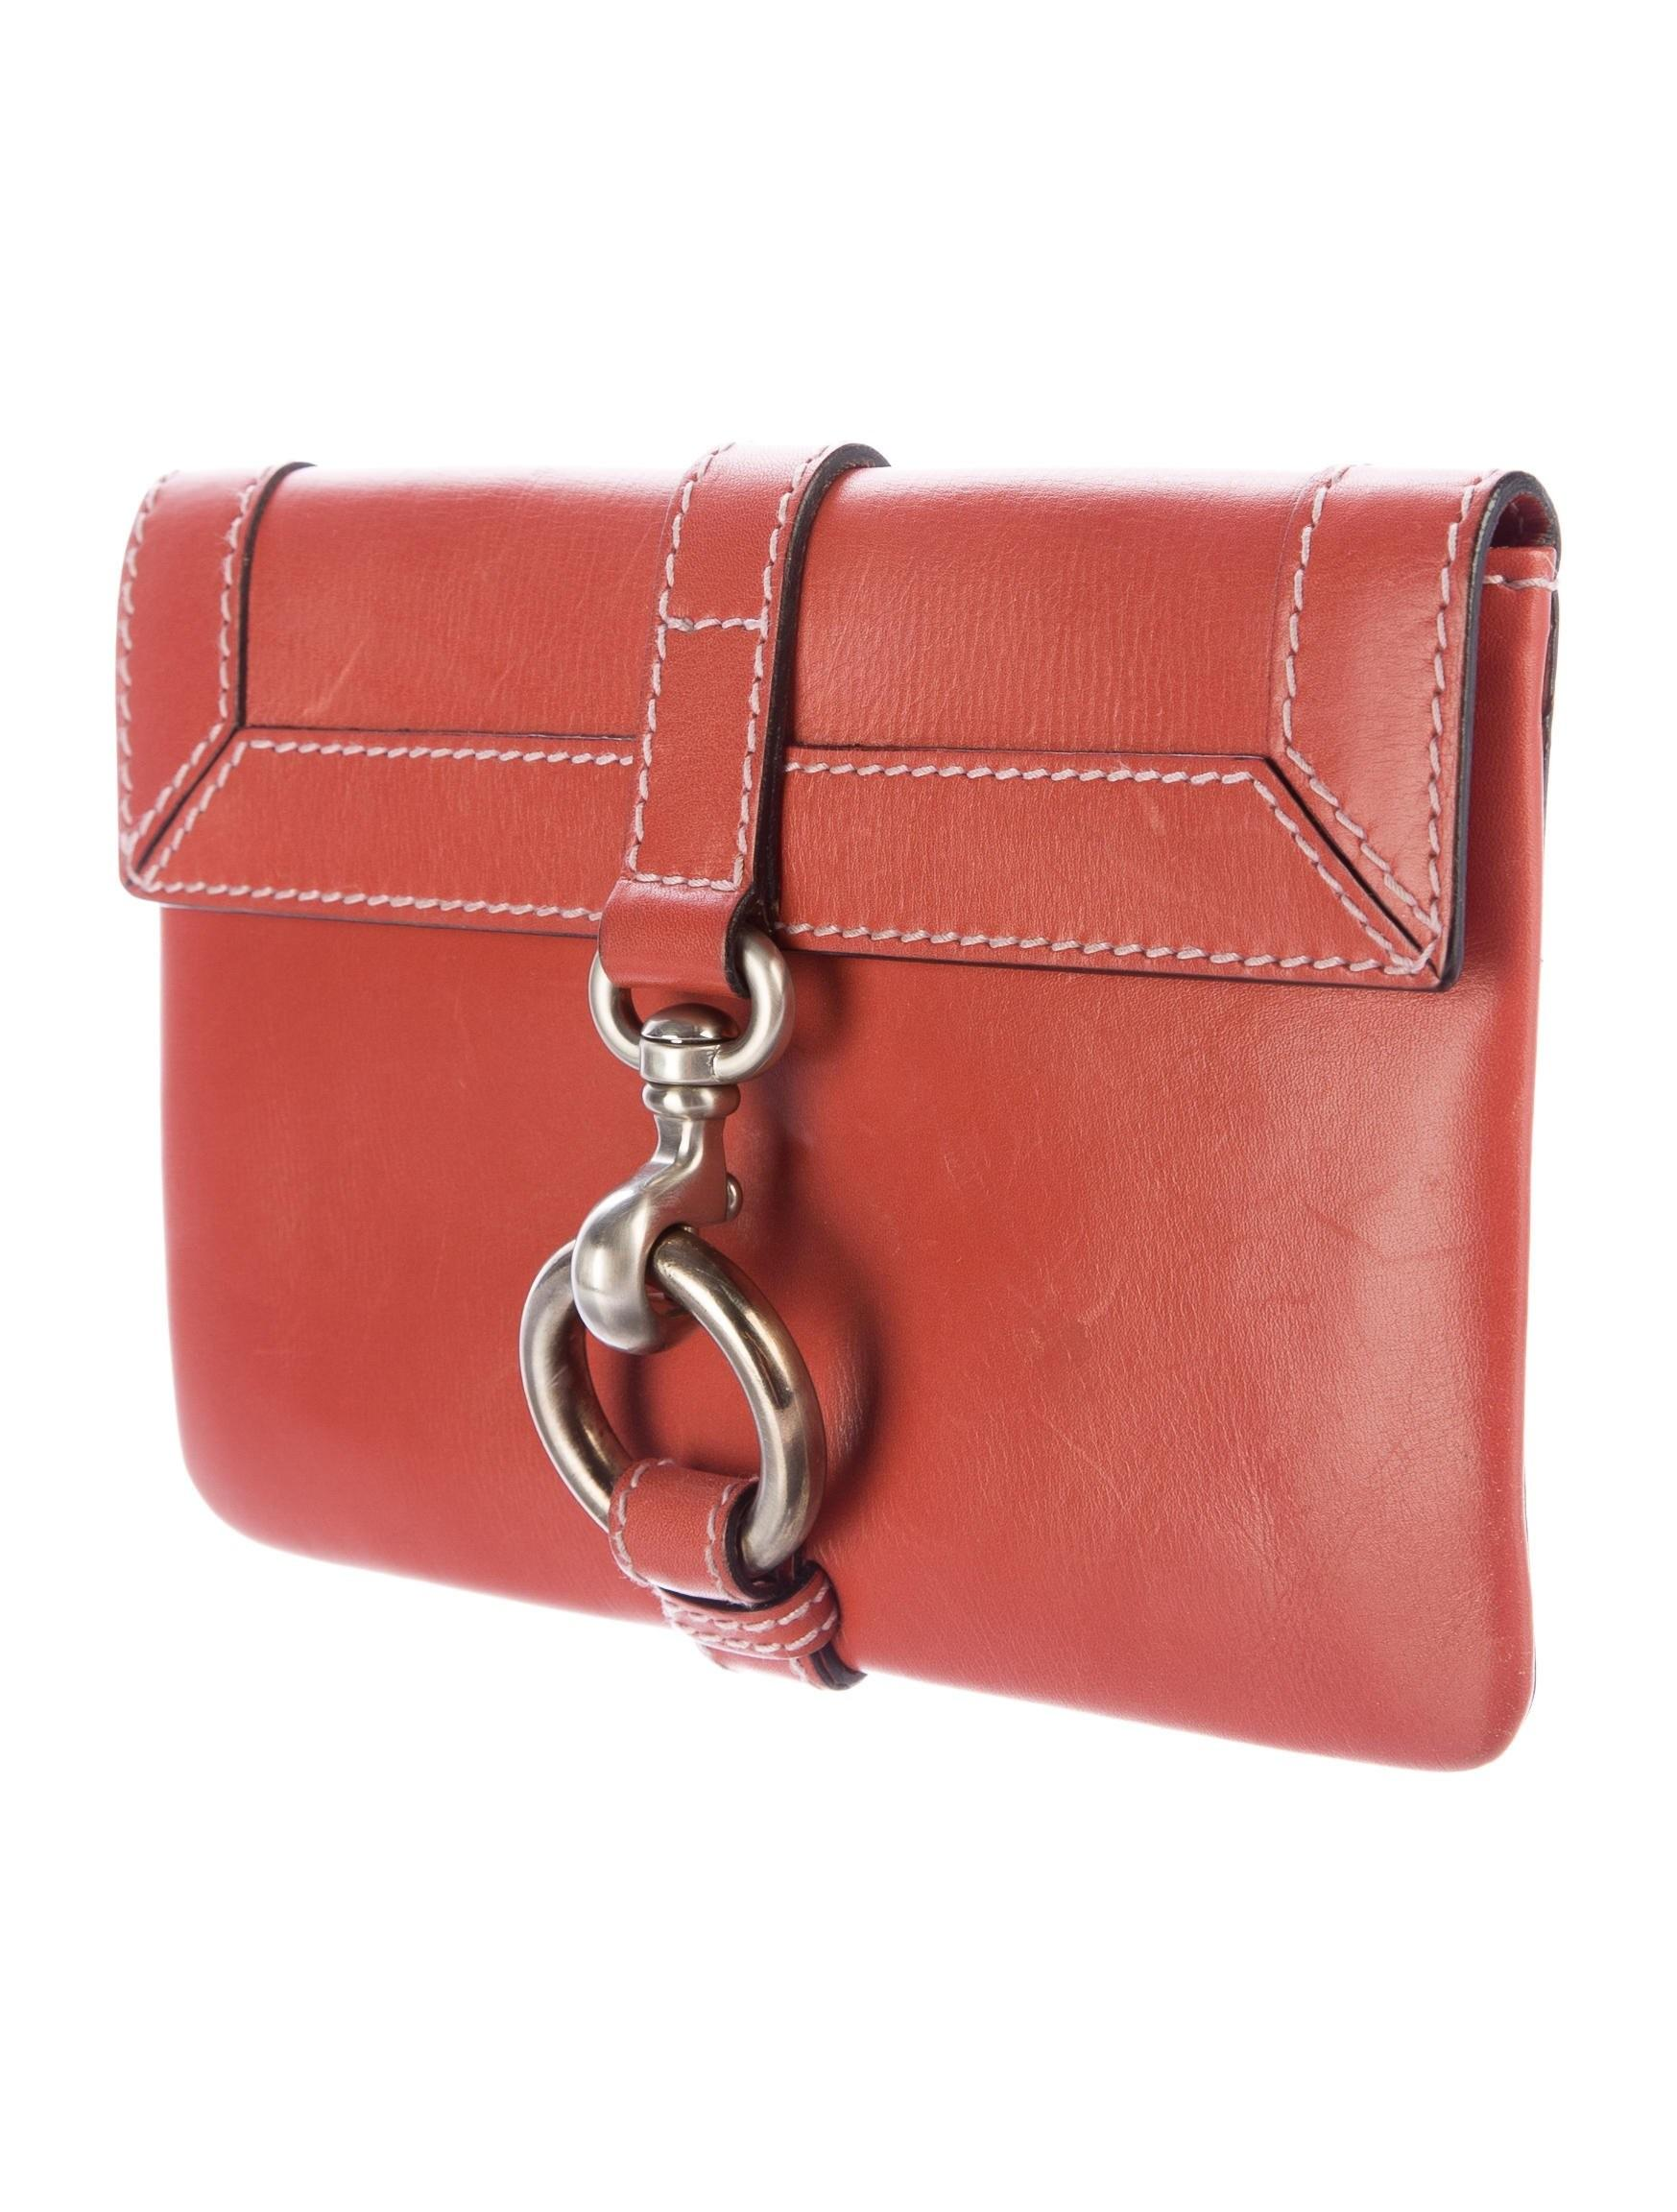 Marc Jacobs Leather Flap Clutch Handbags Mar